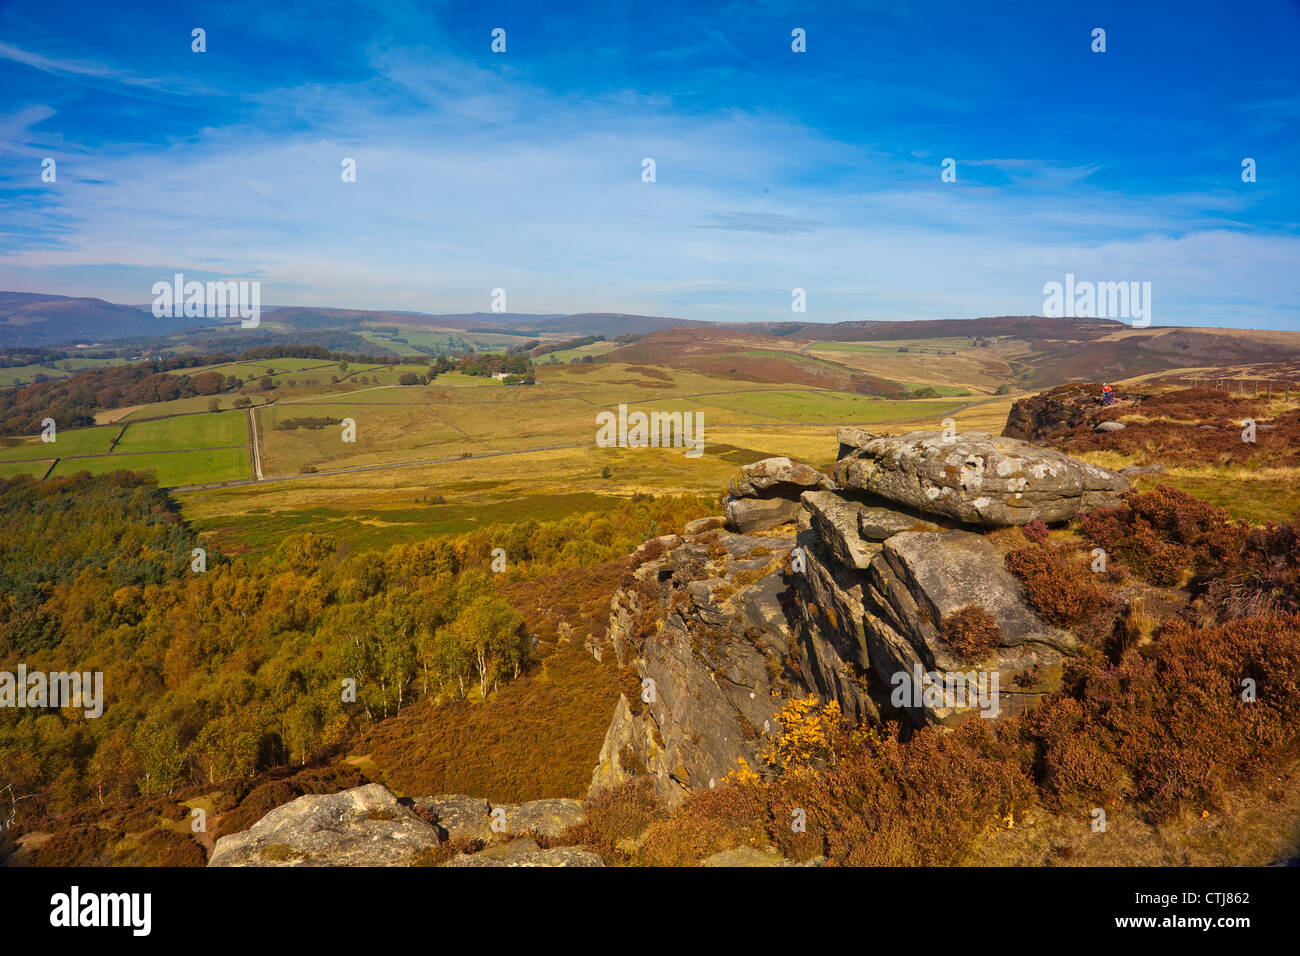 Looking north east from Millstone Edge towards Kinder Scout in the Peak District National Park Derbyshire England - Stock Image